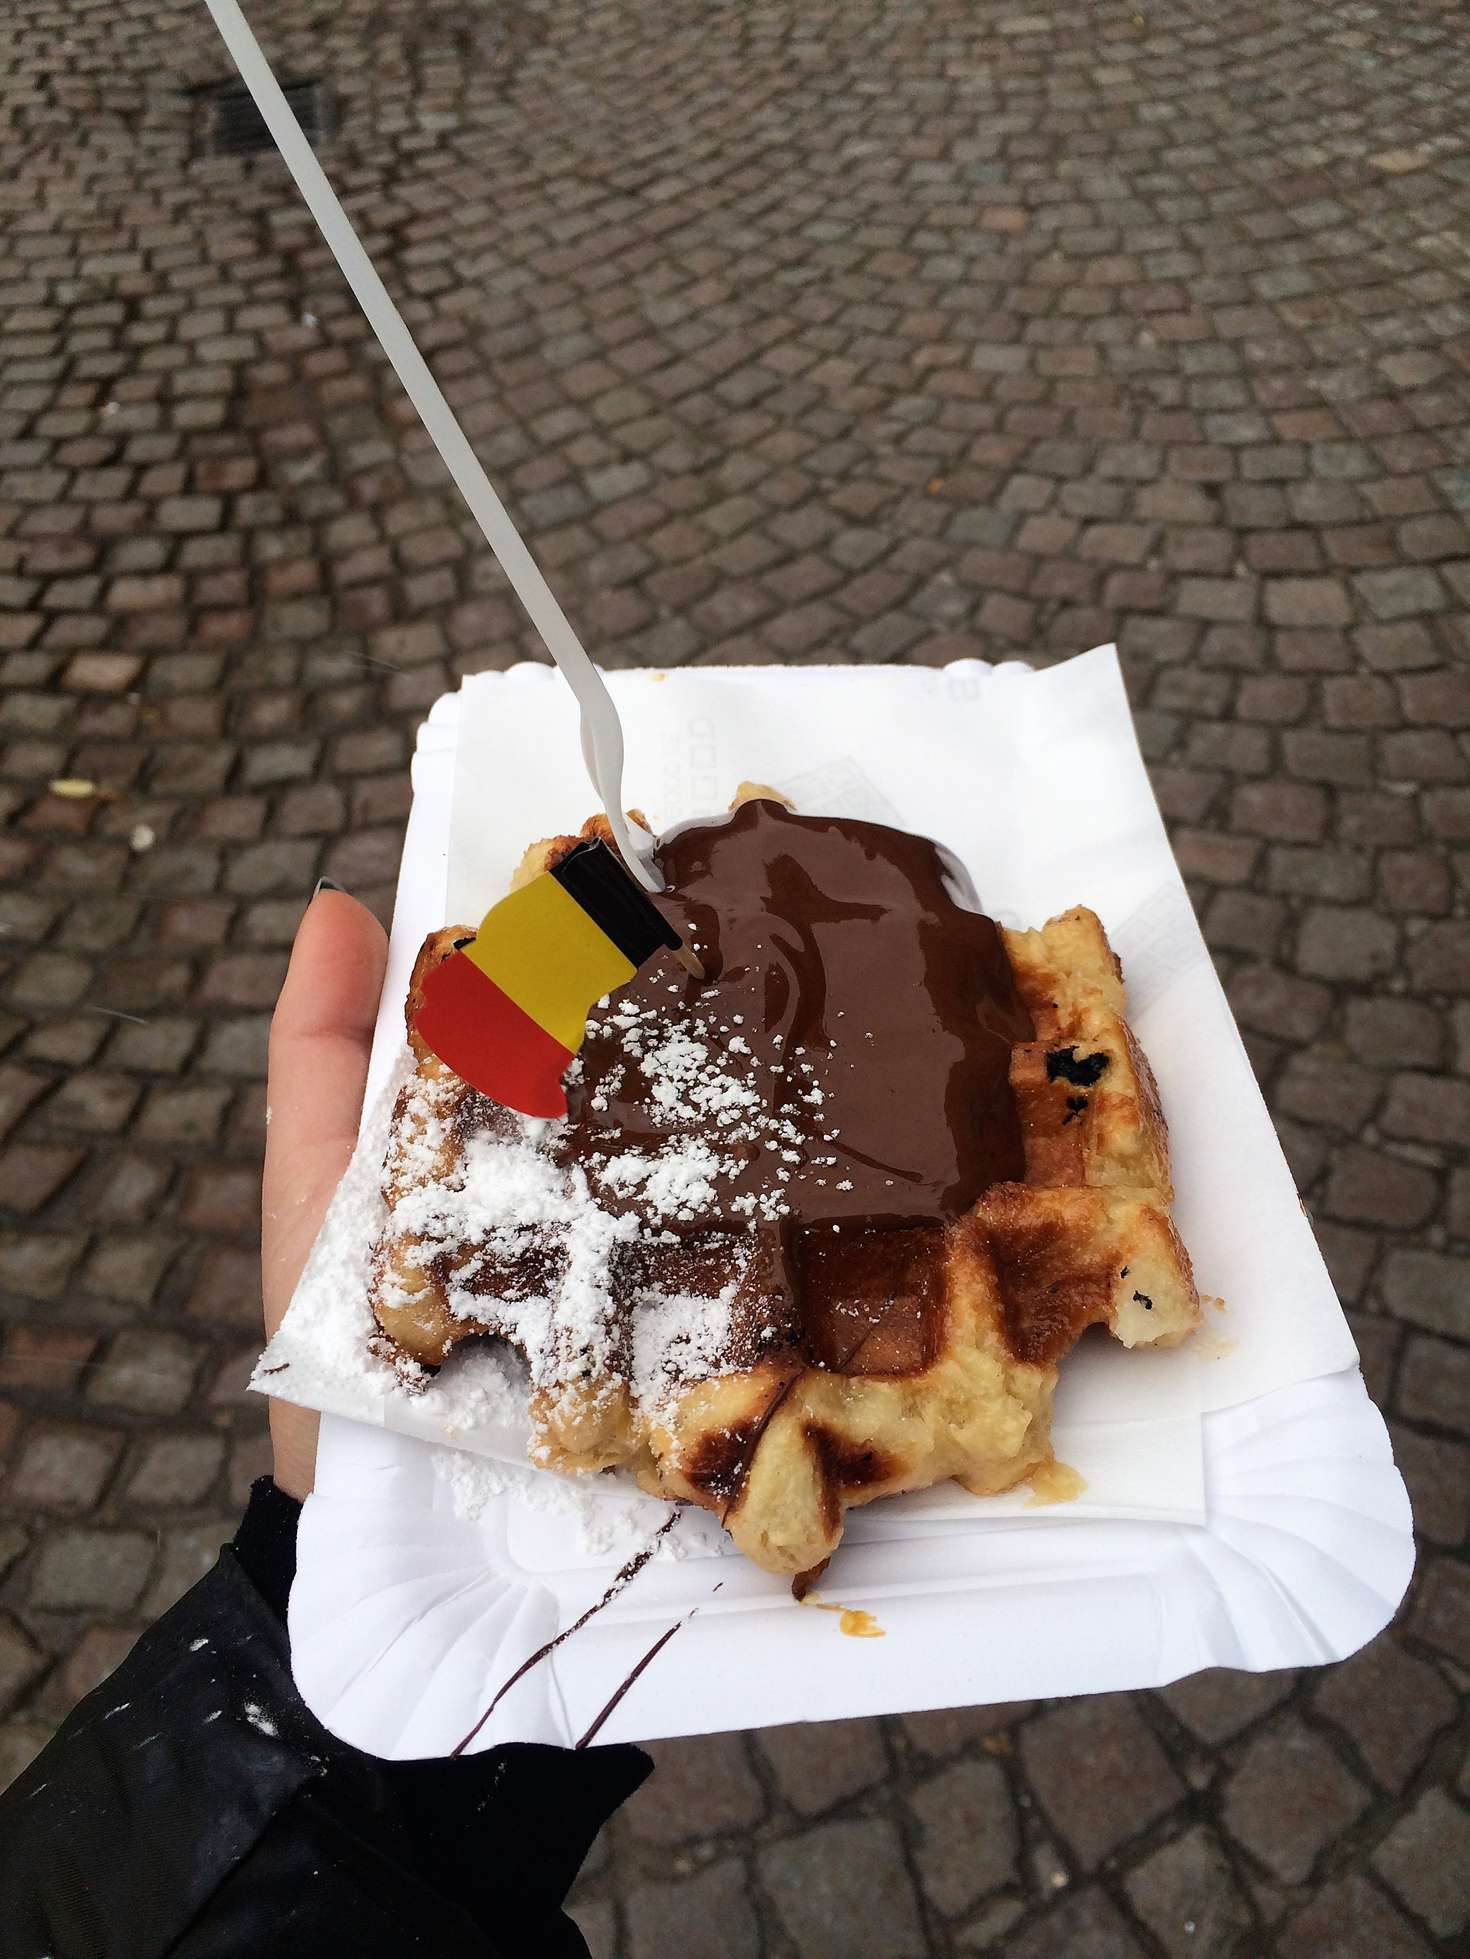 A picture of a liege waffle covered in nutella and topped with powdered sugar and a Belgian flag in Bruges, Belgium.